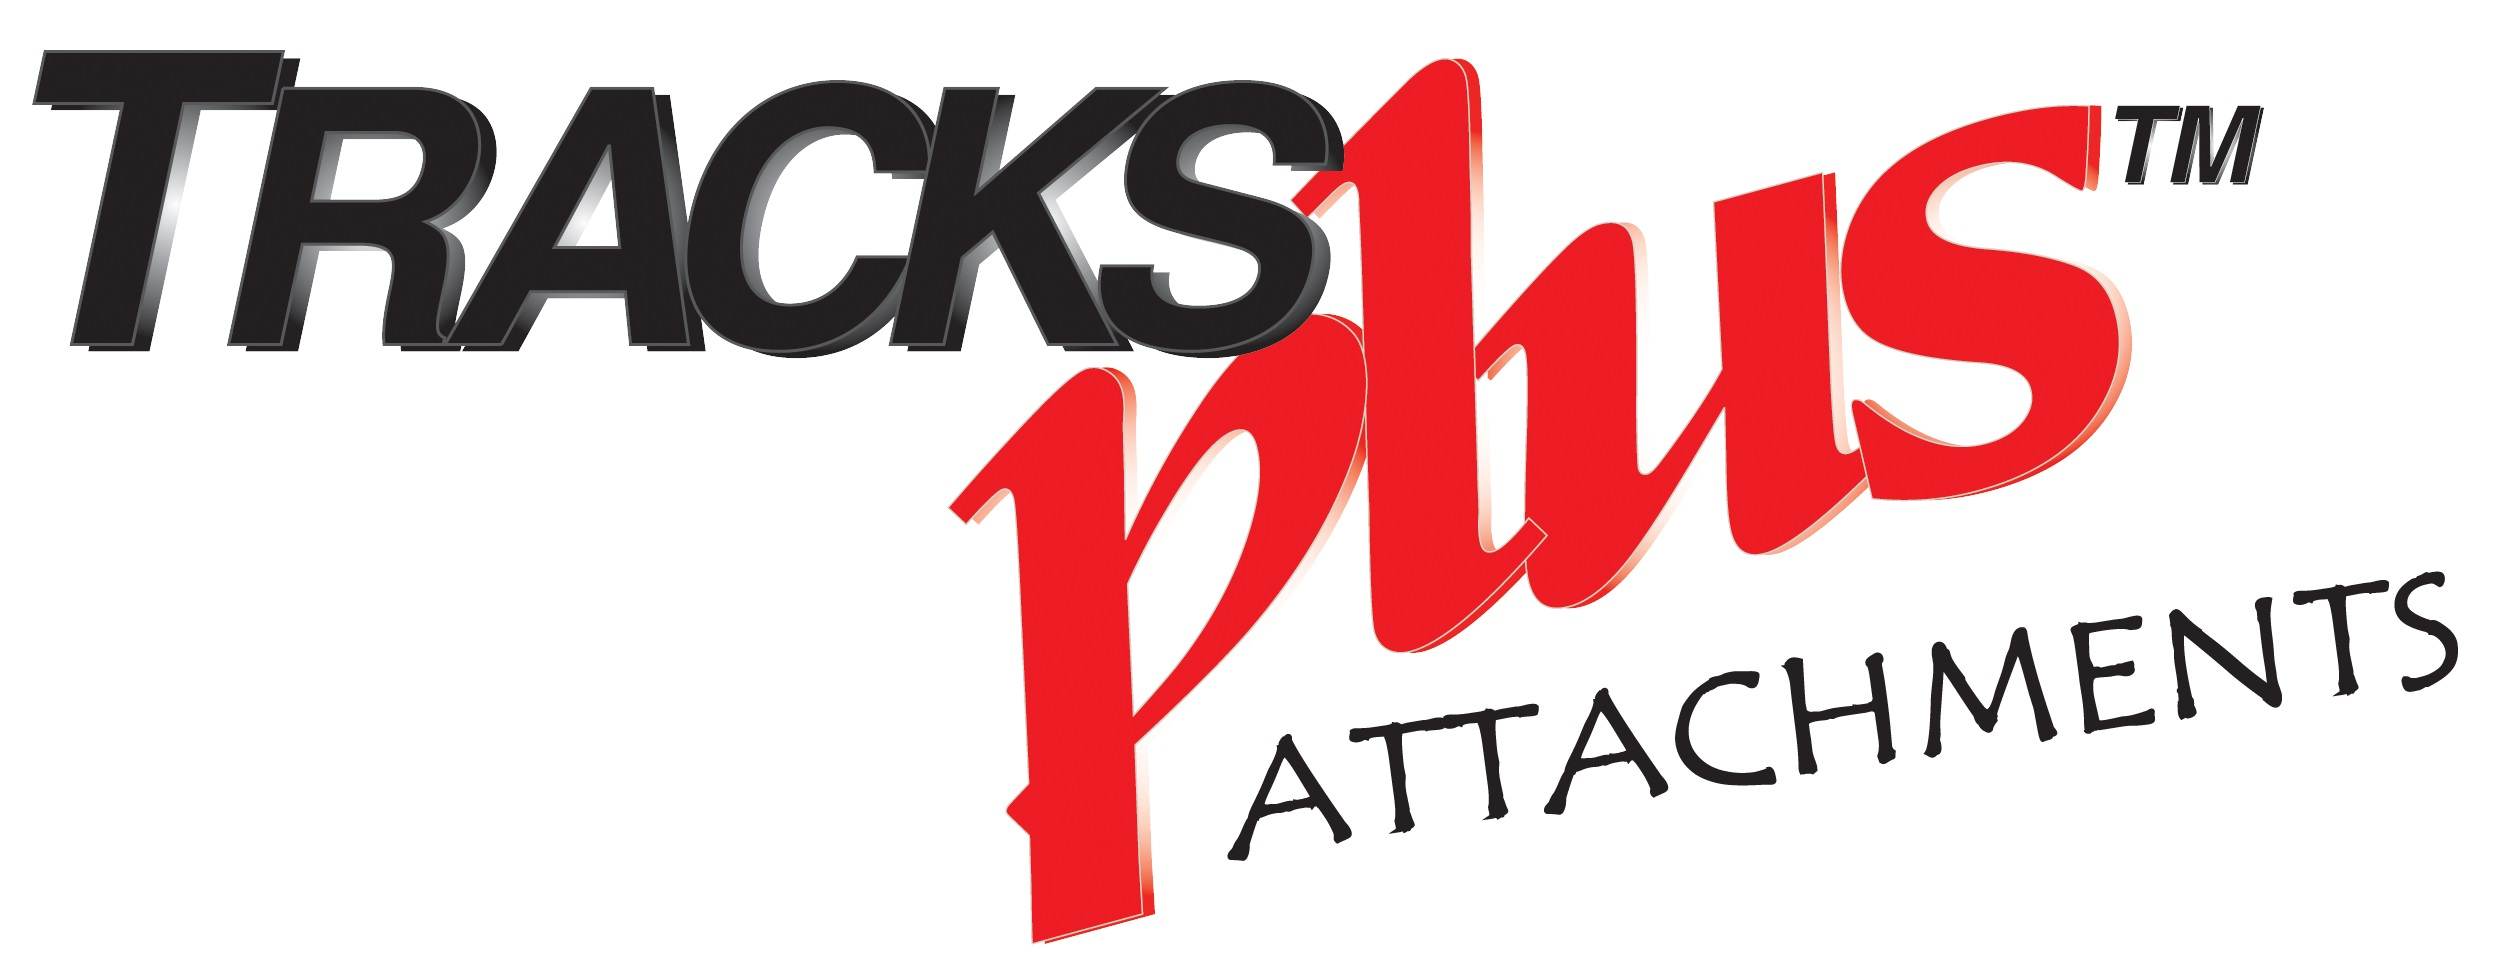 tracks-plus-logo-w-attach-image.jpg